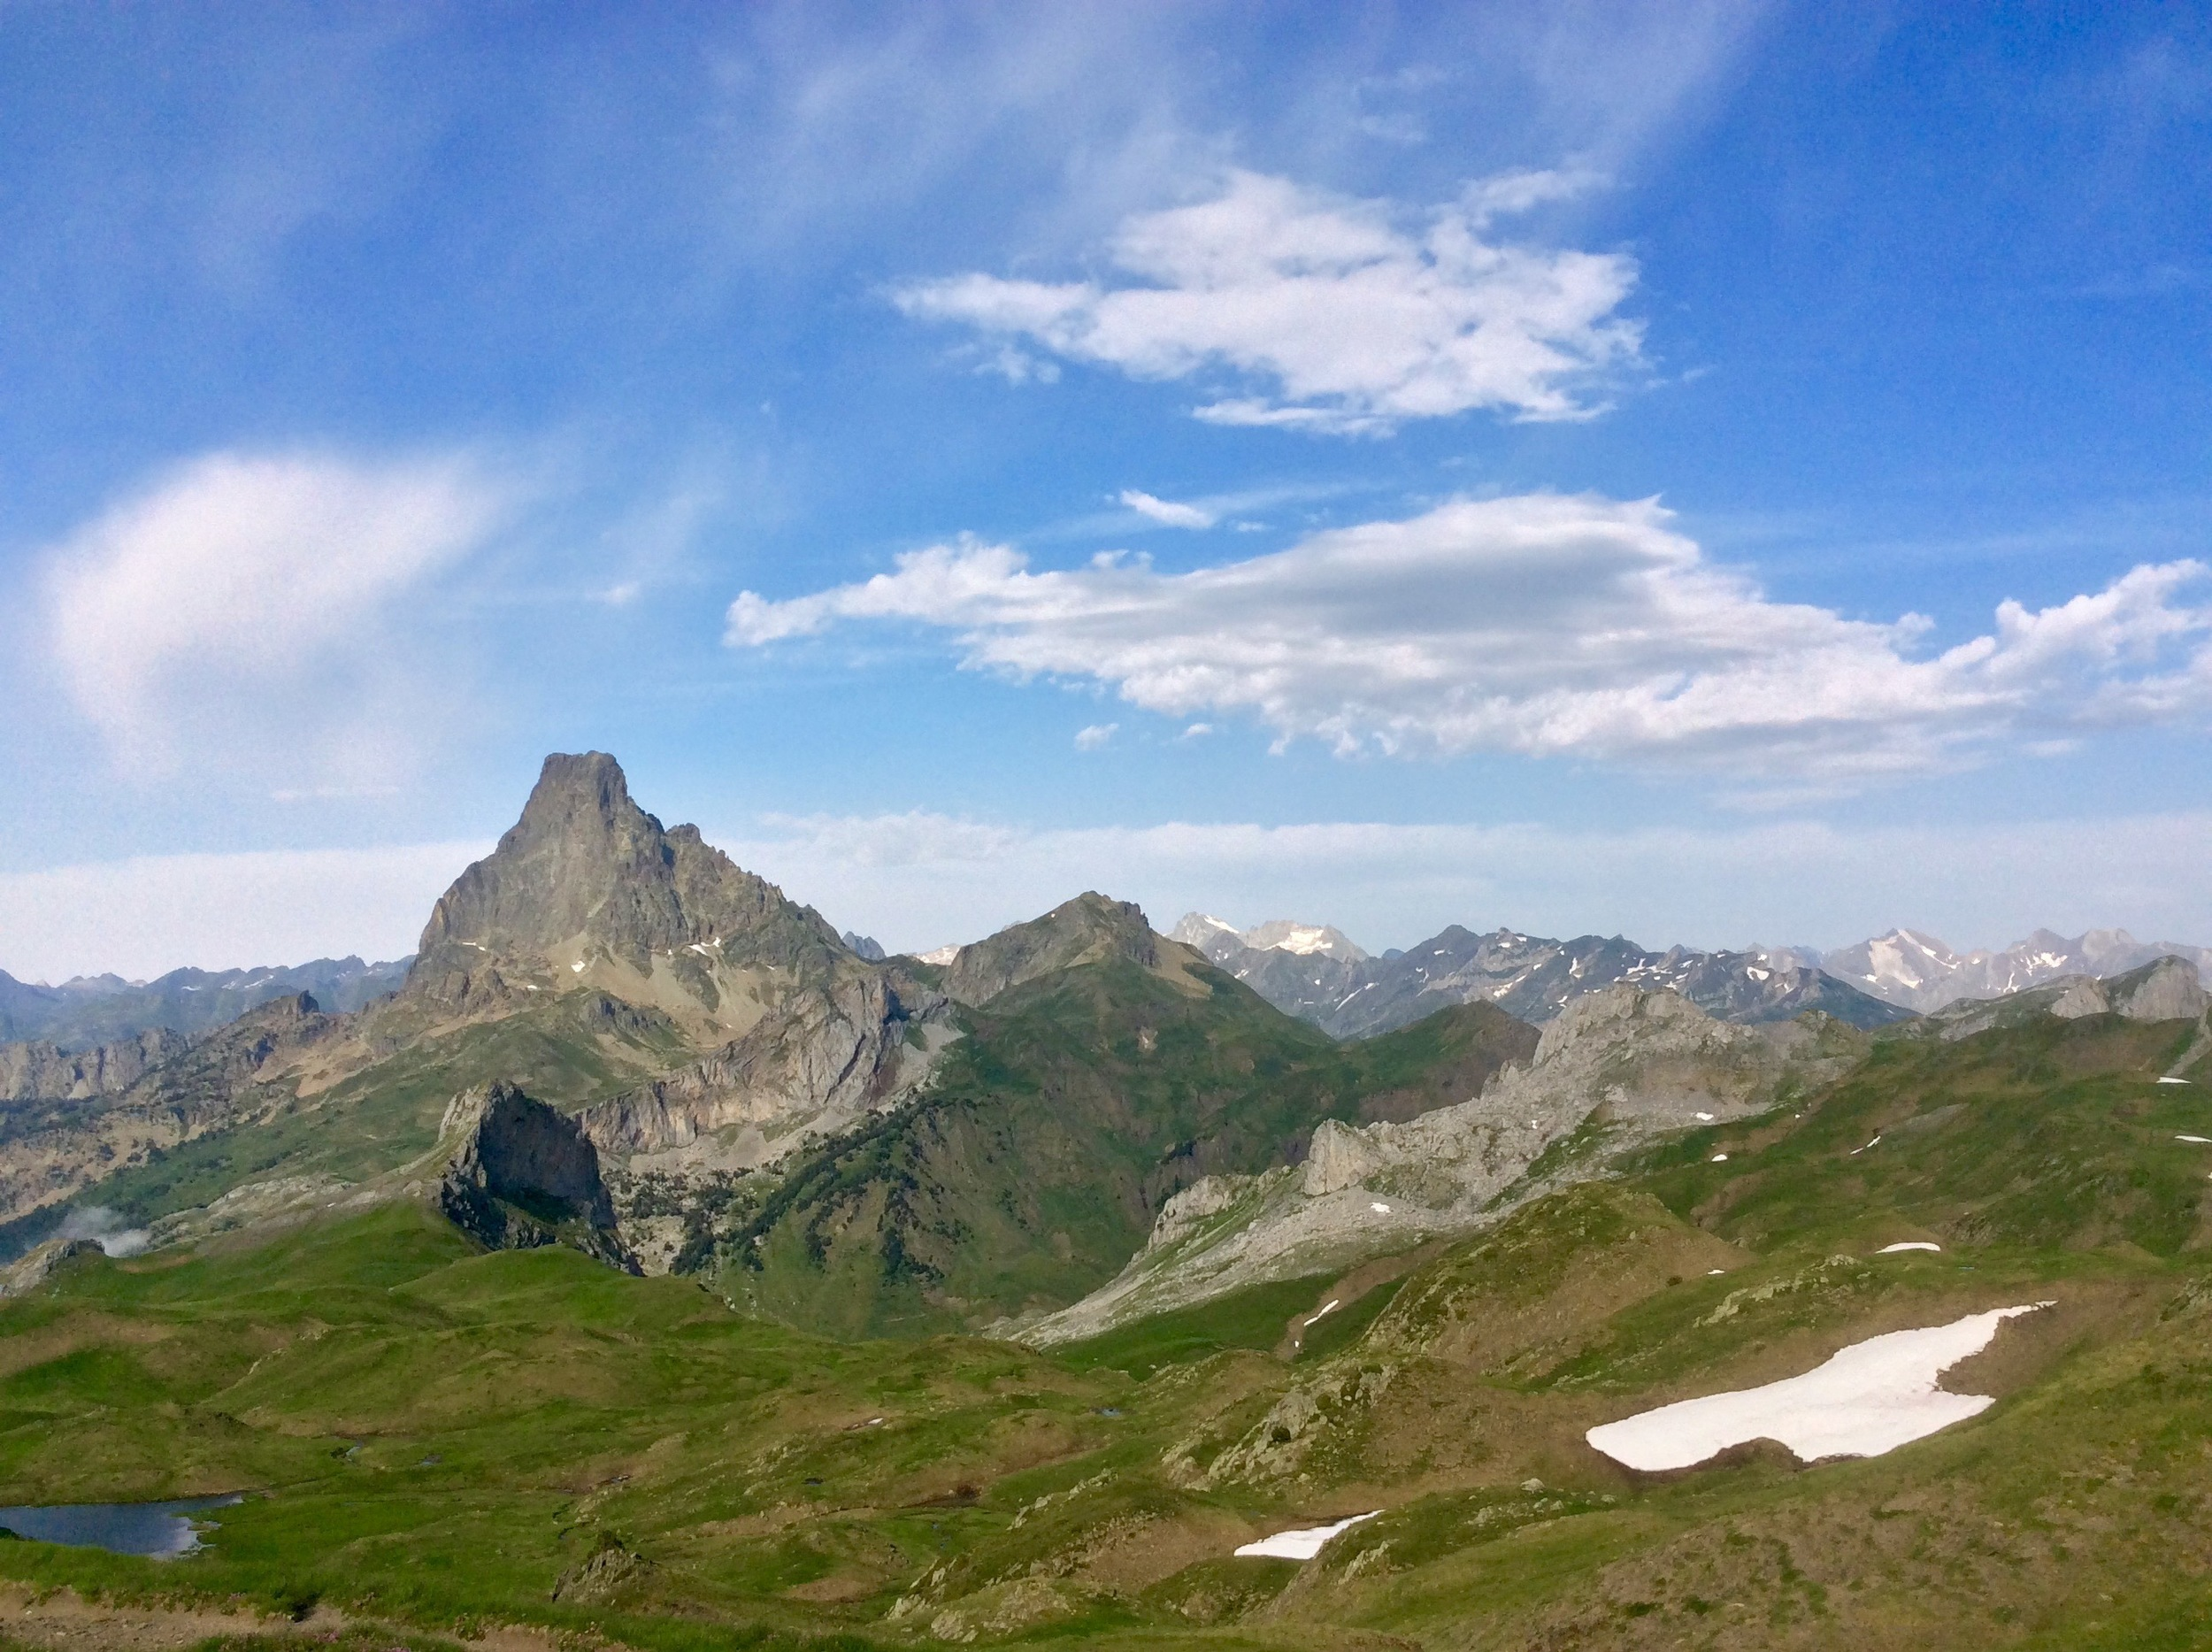 Pic du Midi d'Ossau, from west